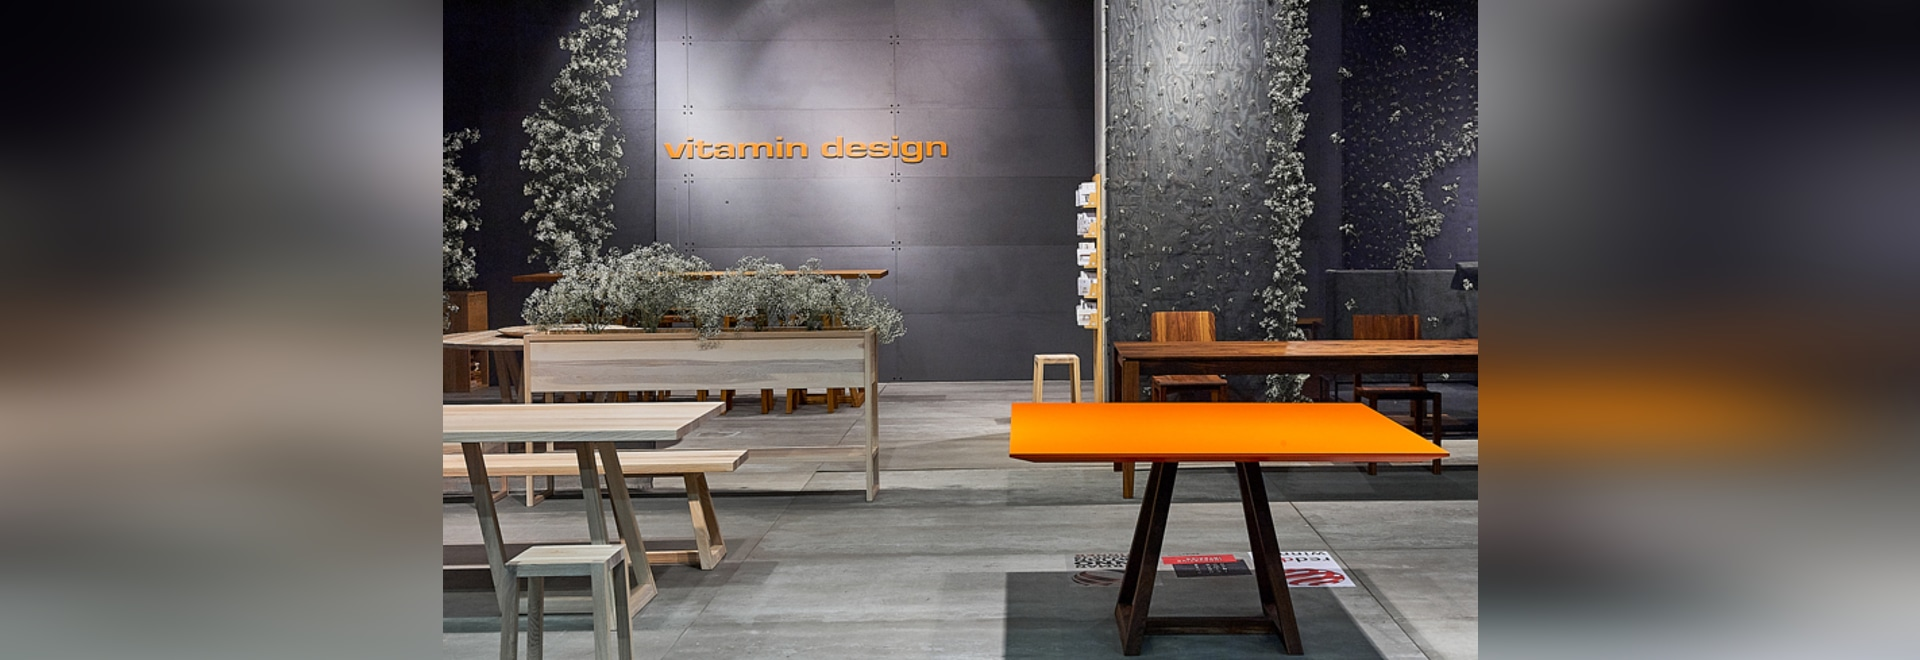 vitamin design at imm cologne 2020